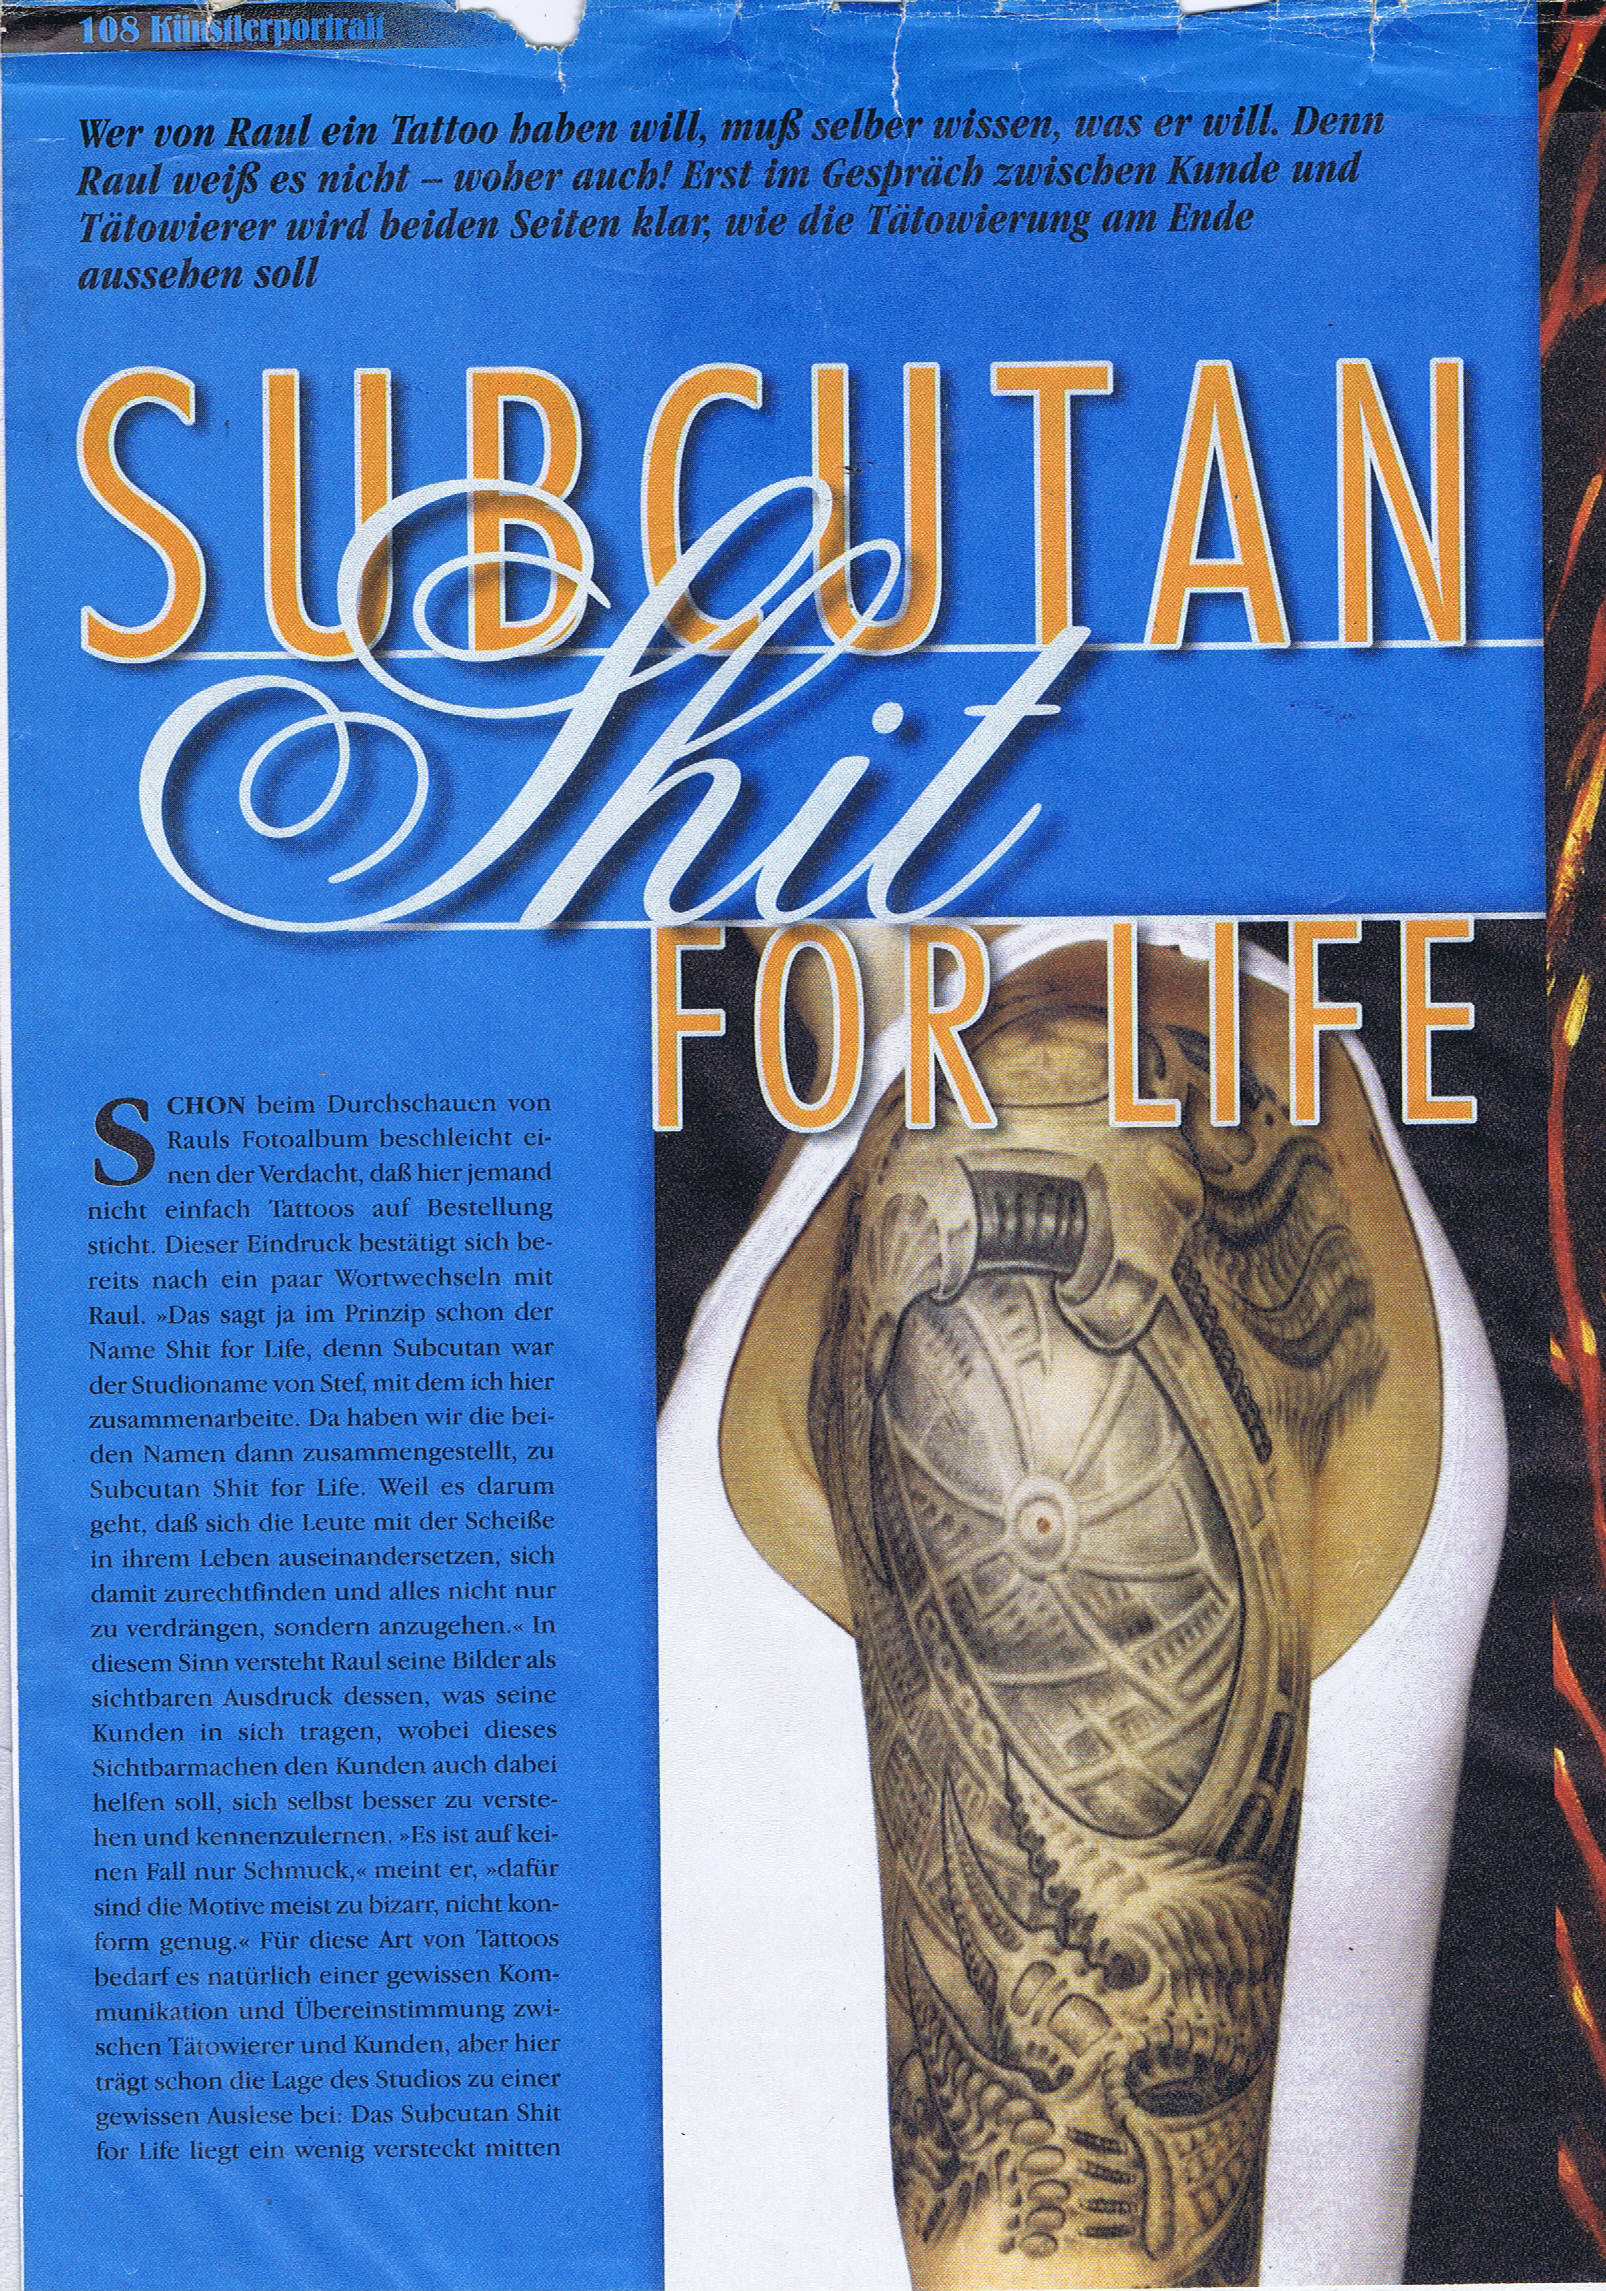 Shit for Life Tattoo Bericht Tätowiermagazin Raul 1999